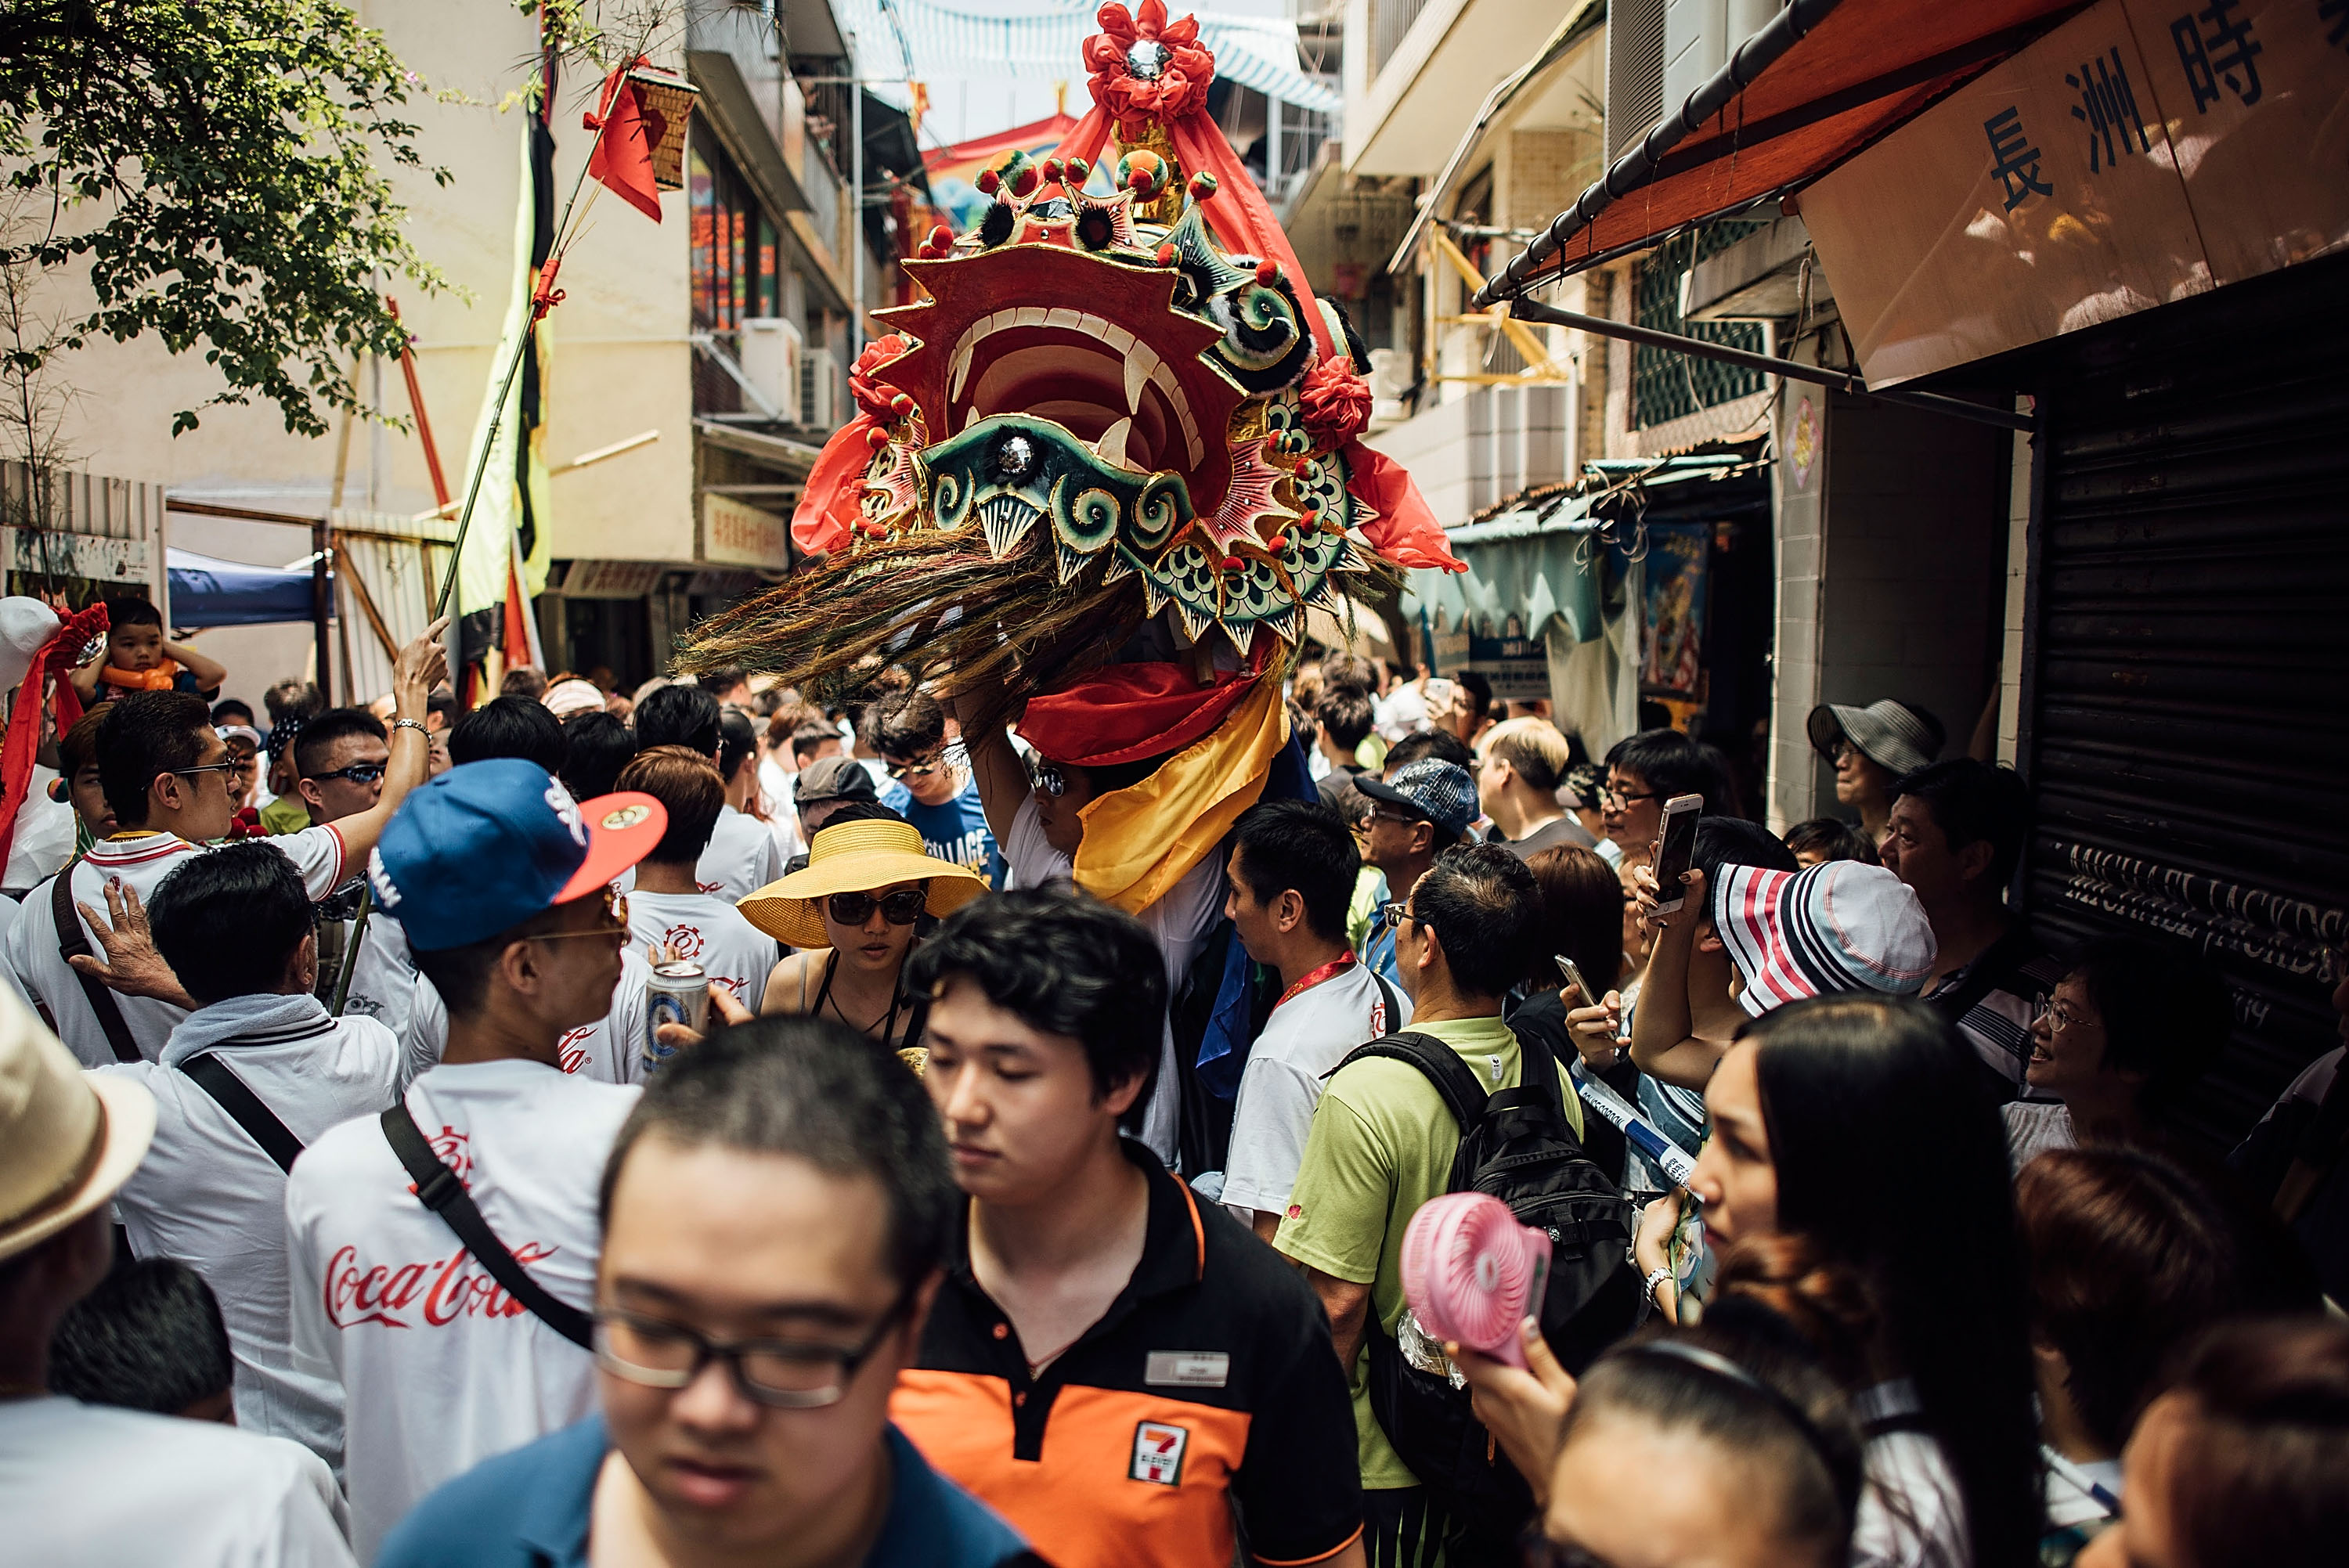 HONG KONG - MAY 25:  Participants take part in a dragon dance during Piu Sik (Floating Colours) Parade at Bun Festival in Cheung Chau Island on May 25, 2015 in Hong Kong. One of Hong Kong's most colourful cultural celebration events, Cheung Chau Bun Festival, will be staged on 25 May 2015 (Monday) until 26th May 2015 midnight (Tuesday). The festival has over 100 years of history. Every year, thousands of people descend upon the tiny island for The Piu Sik (Floating Colours) Parade, Lucky Bun (Ping On Bun) and The Bun Scrambling Competition, the ancient custom during the festival. The tradition has been passed down for generations. To ensure the tradition keeps passing on, every year, Cheung Chau Islanders fuse the new elements with the custom to draw the attention from the young. This year, 'K-Pop stars' will be featured by one of the Piu Sik parade teams, the first-ever 'Ping On (Lucky) Macaron' with Chinese tea favour is invented, and more to be found out on the island.  (Photo by Anthony Kwan/Getty Images for Hong Kong Images)